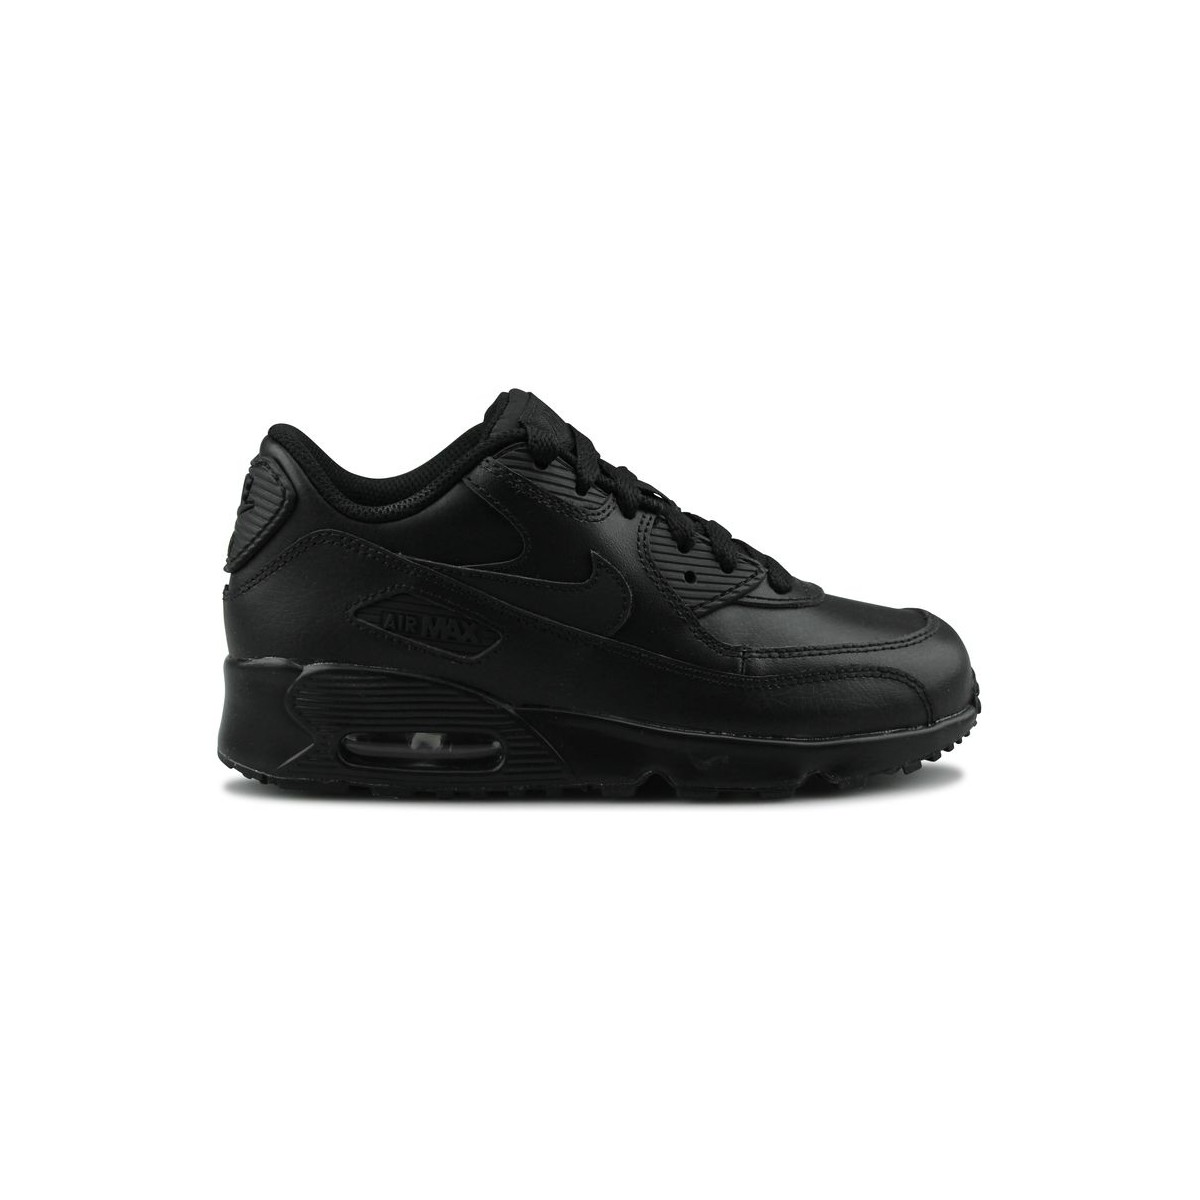 pick up special for shoe new arrive Nike Air Max 90 LTR Noir Enfant 833414-001 | Street Shoes Addict